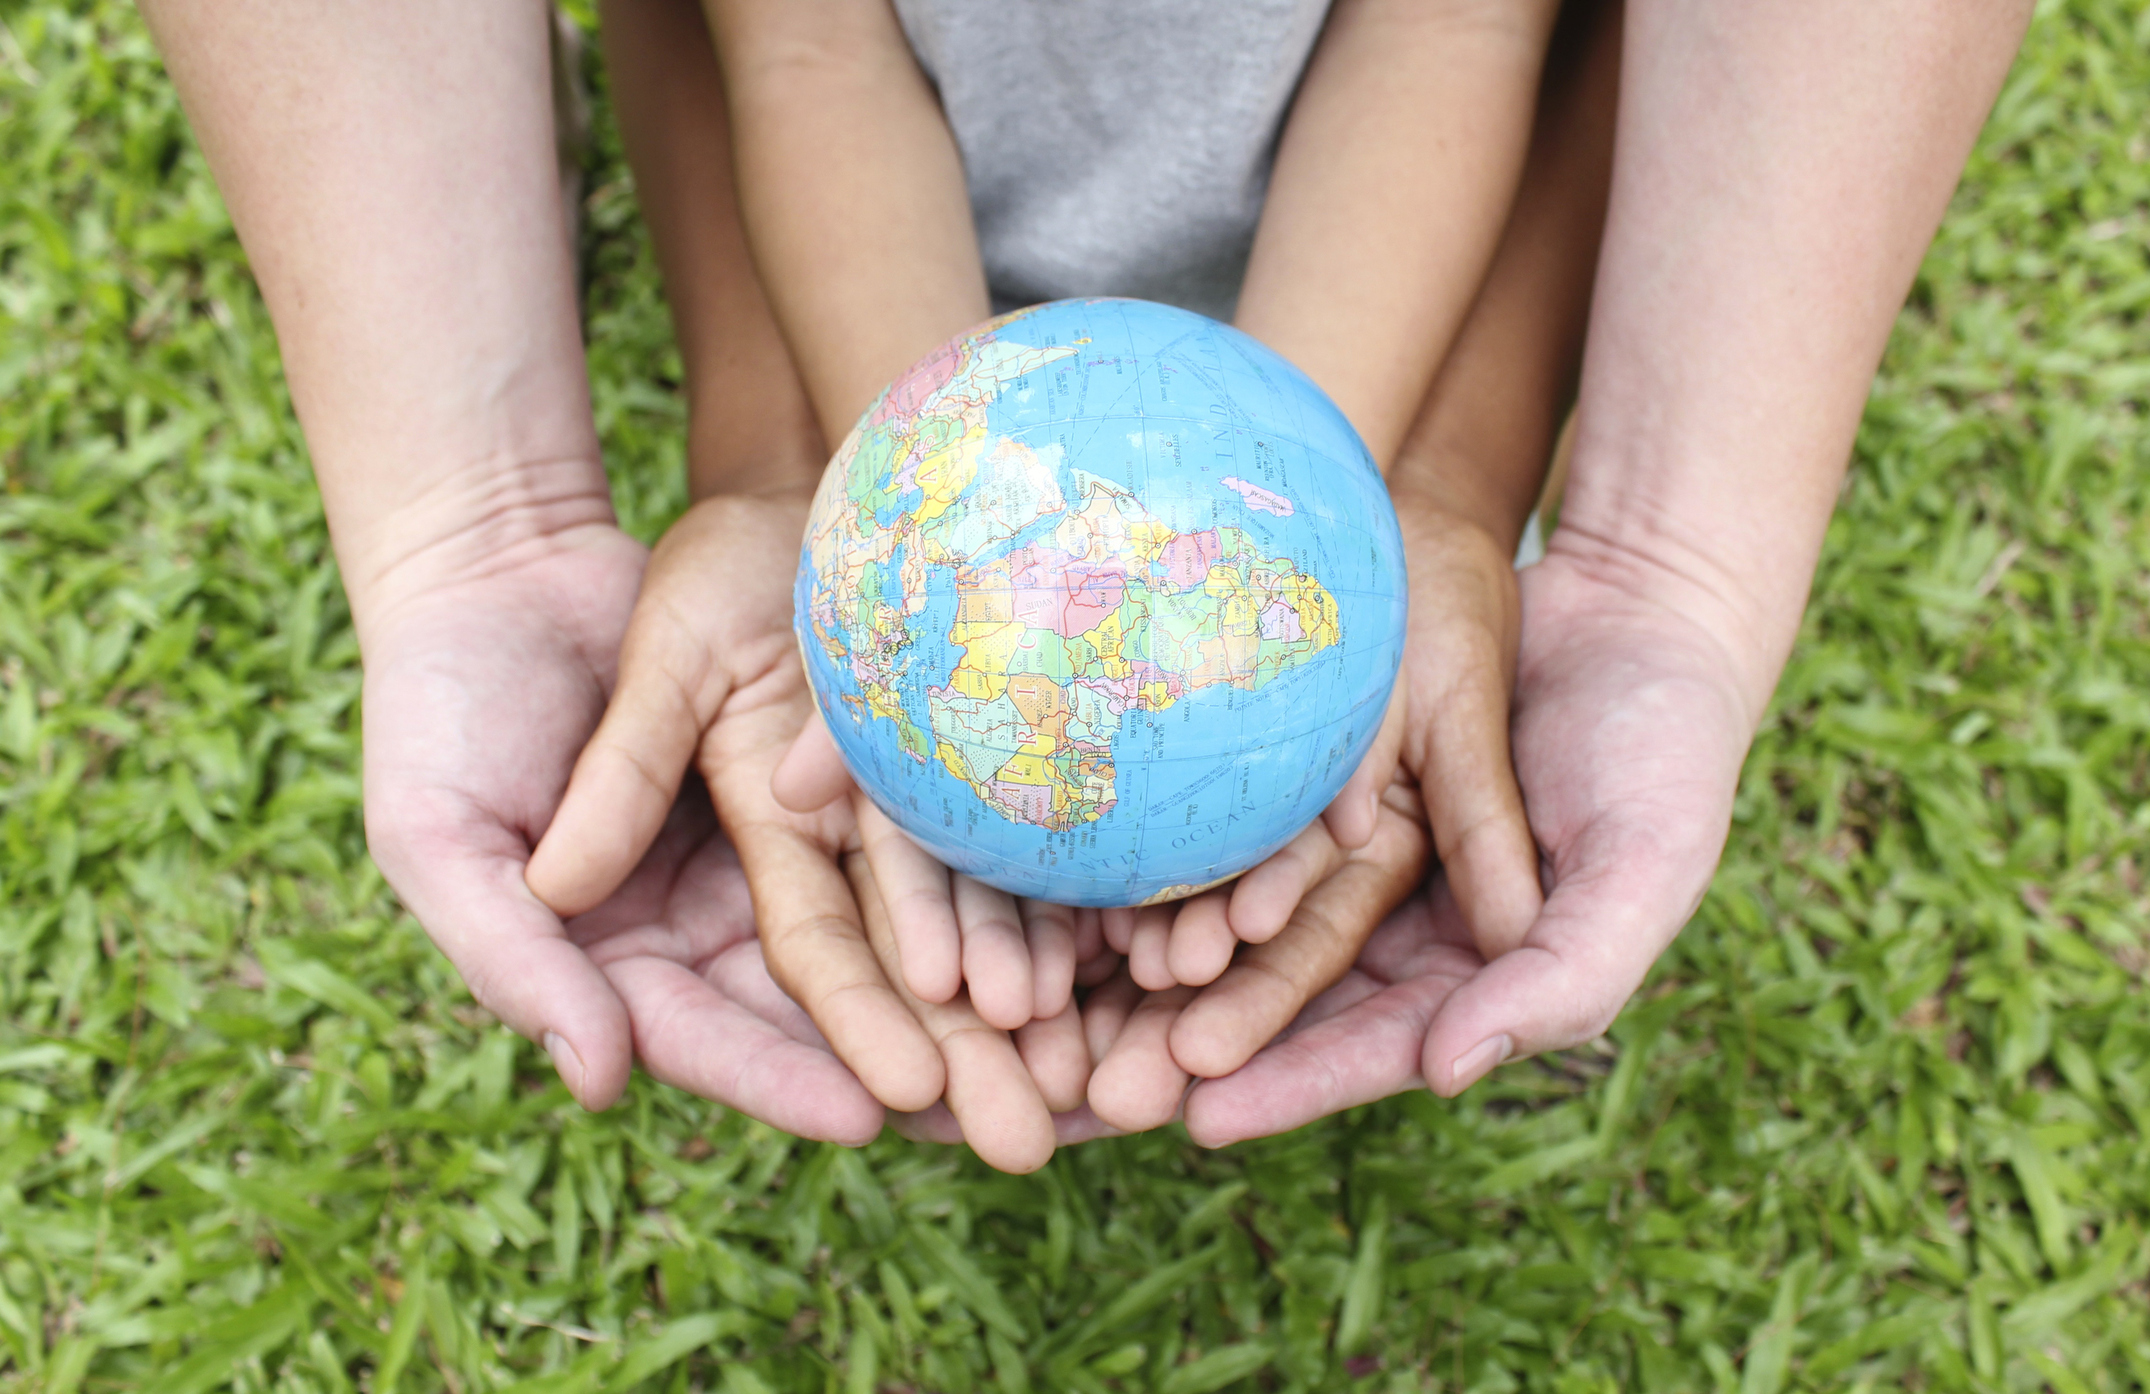 Um, WHAT? The Best Thing You Can Do To Save The Planet Is . . . Not Have Kids